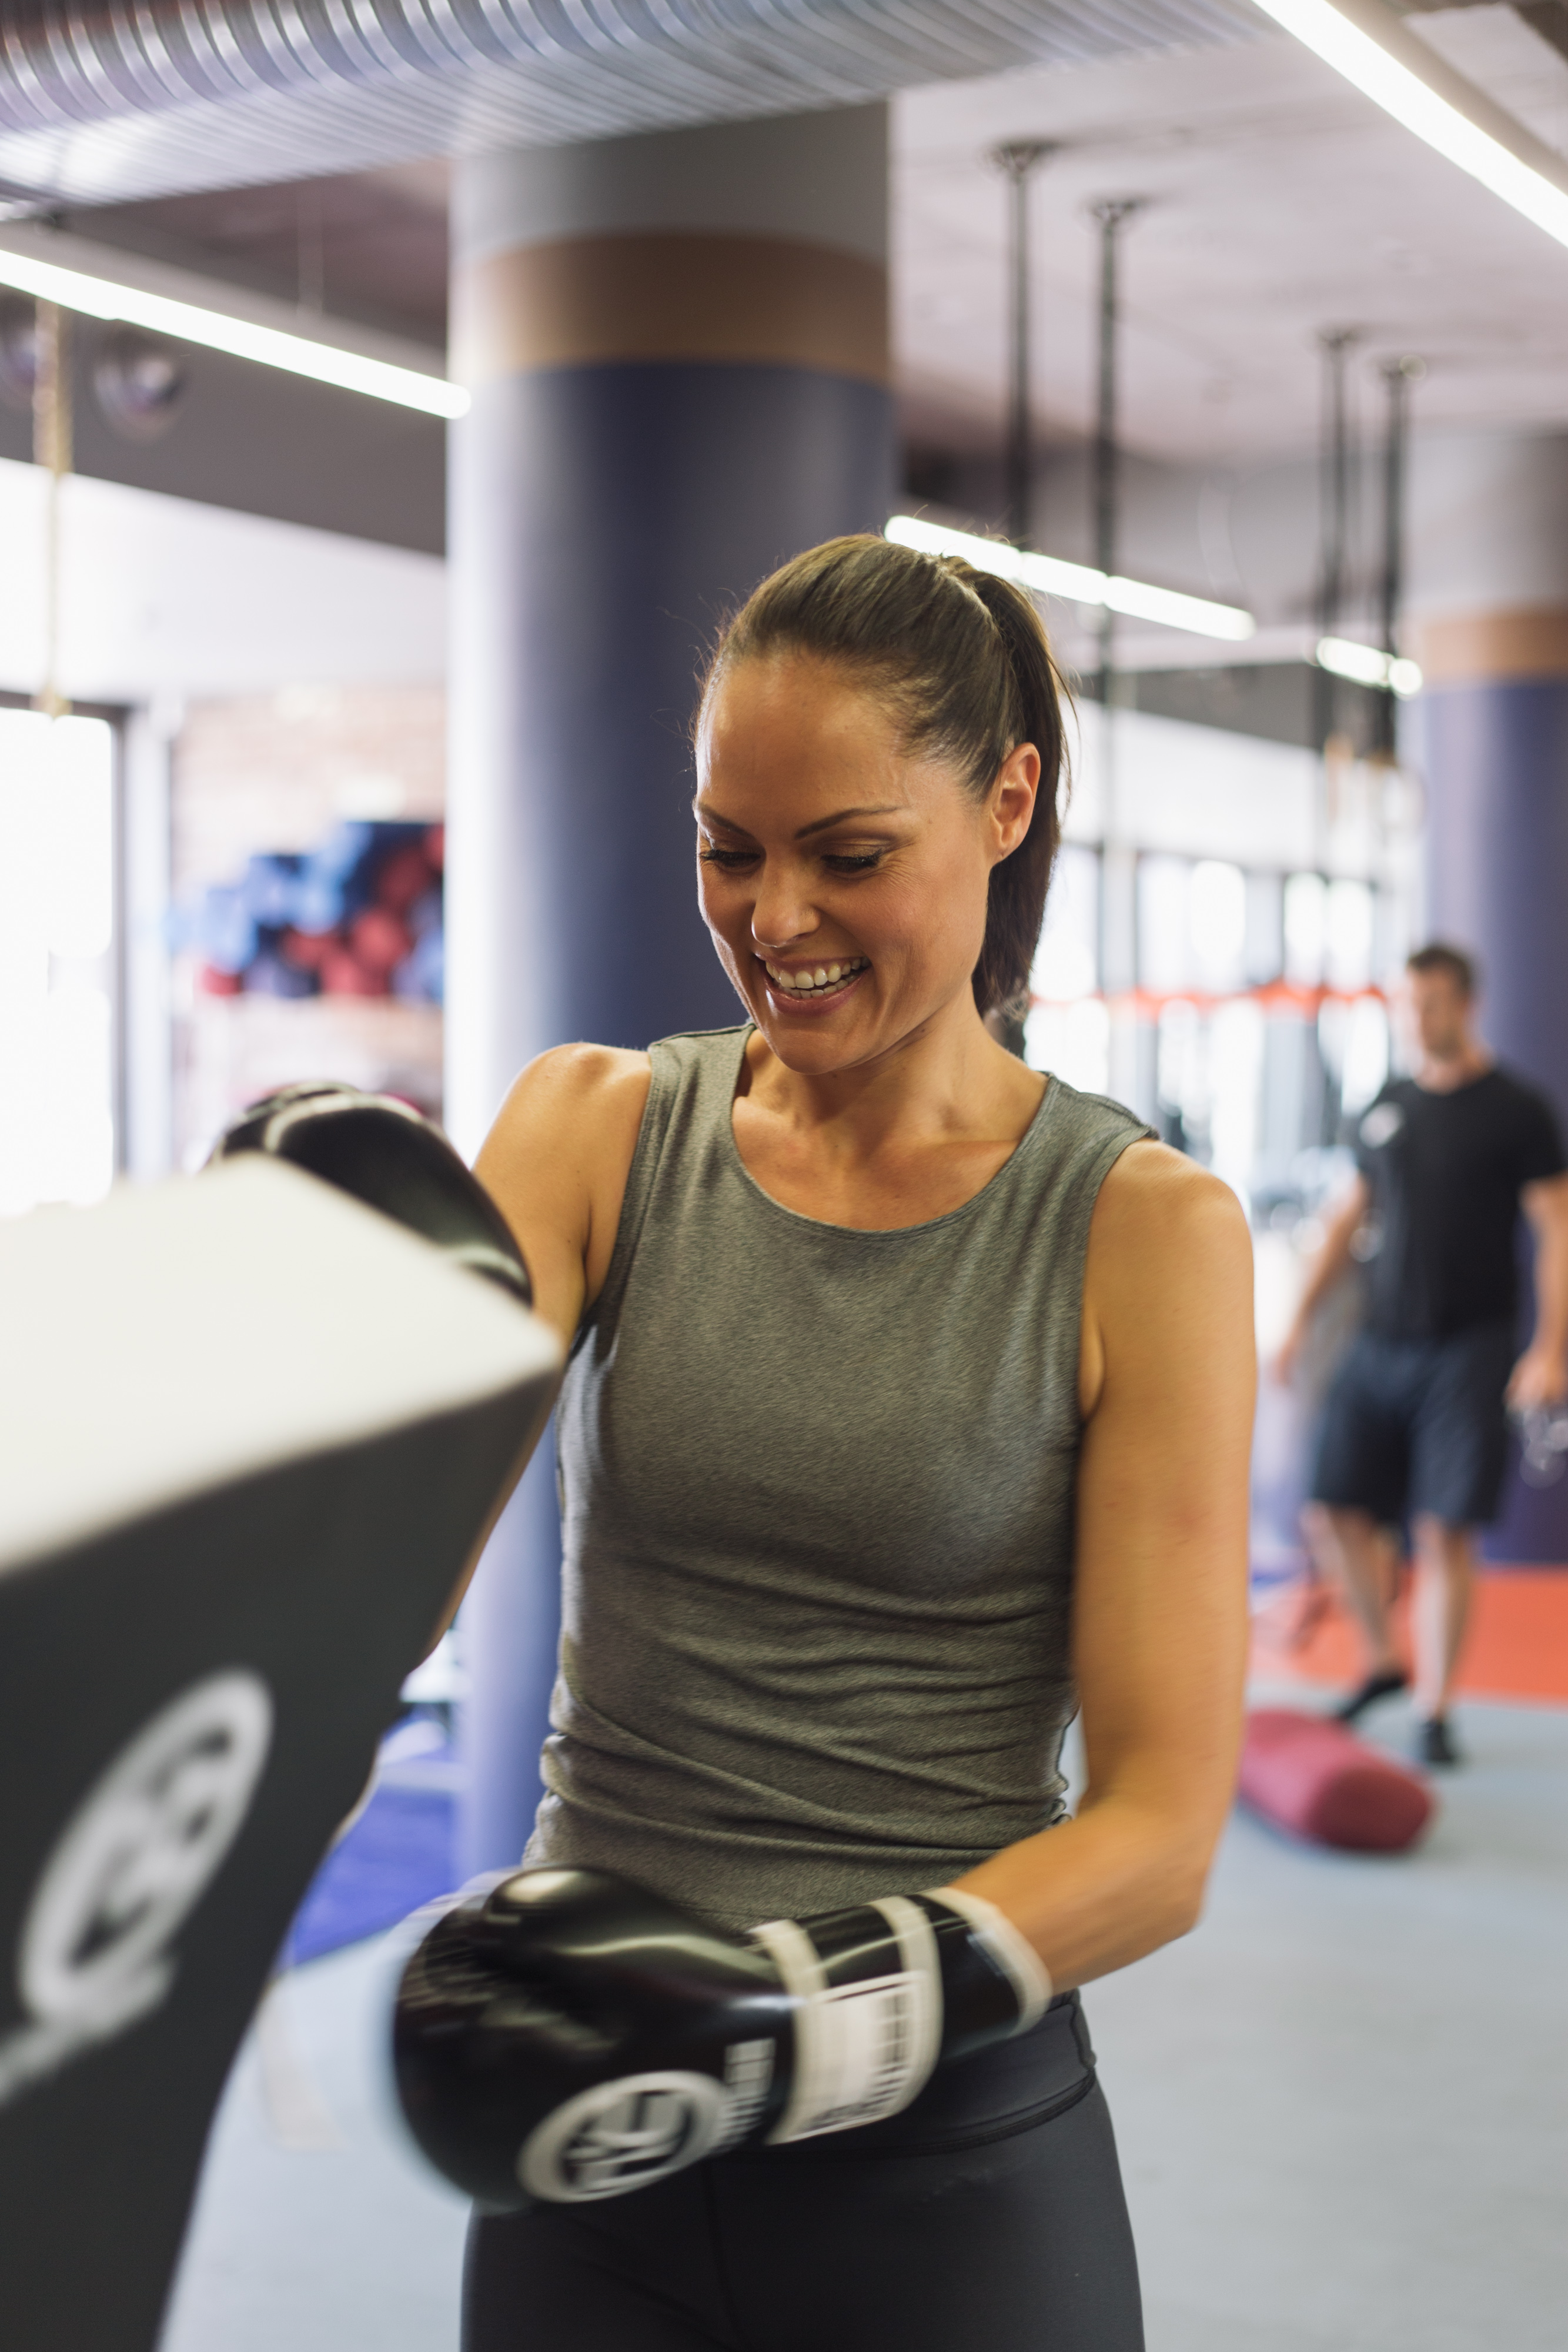 Exercise Right Week – tips on how to make exercise become part of your daily routine!